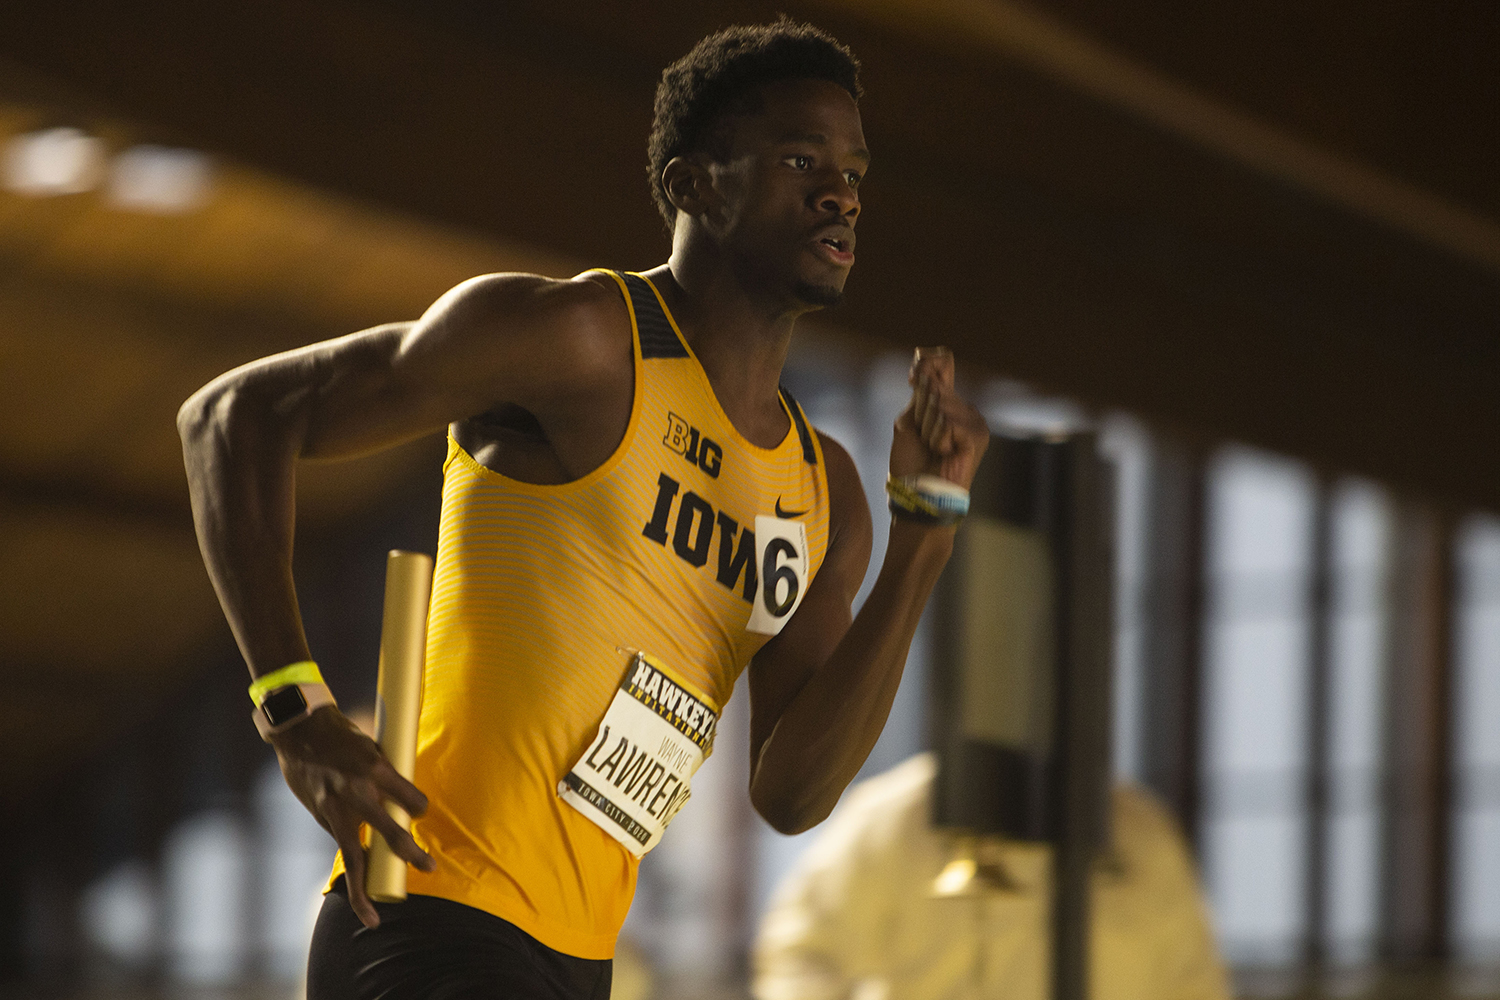 University of Iowa sprinter Wayne Lawrence runs his leg of the 4x400m relay during the Hawkeye Invite at the University of Iowa Recreation Building on Saturday, Jan. 11, 2020. He and the other members of the Iowa B relay finished in ninth place.